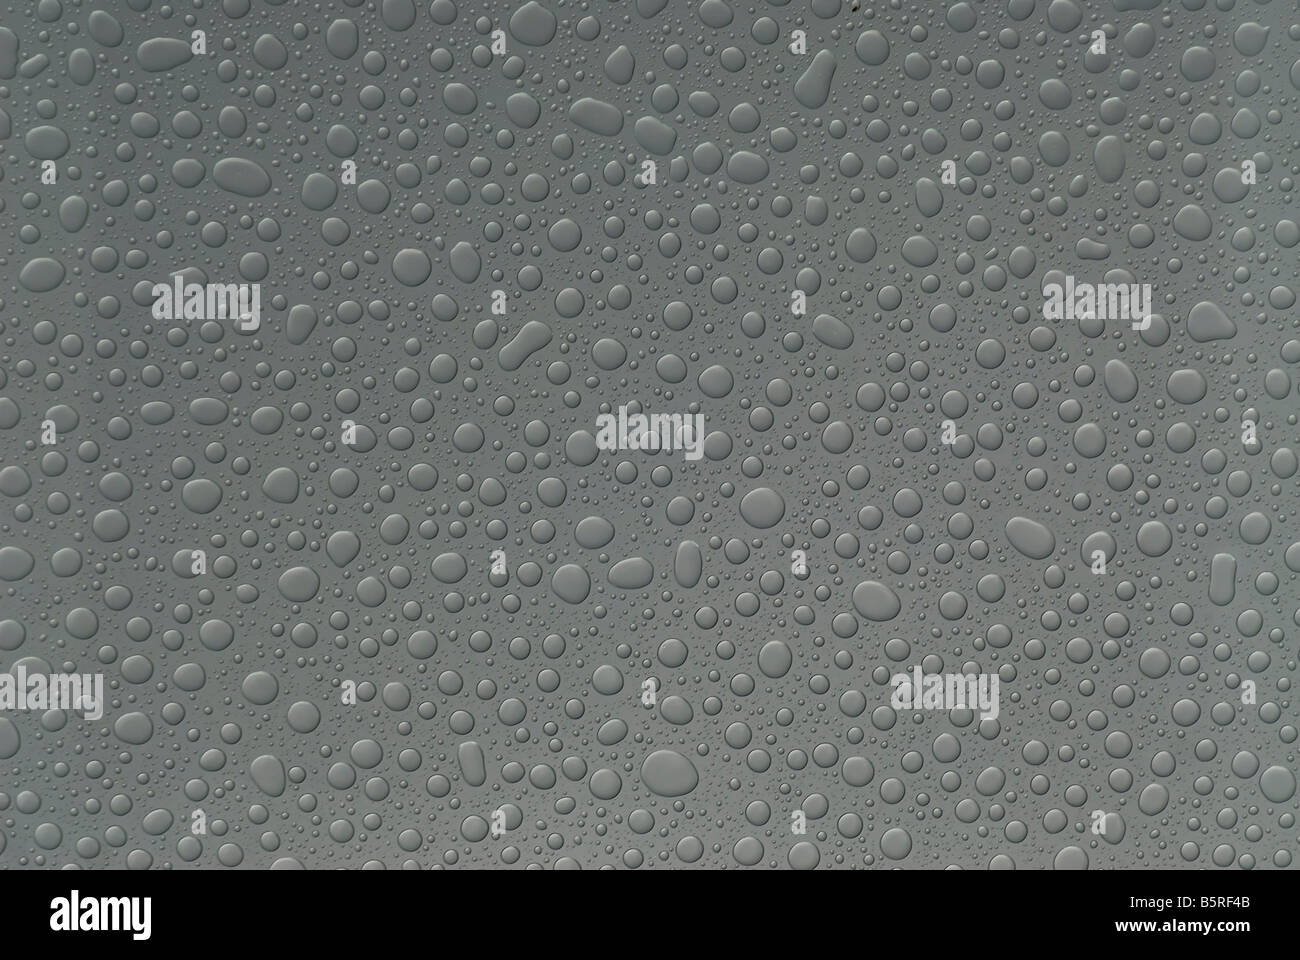 Raindrops on glass - Stock Image